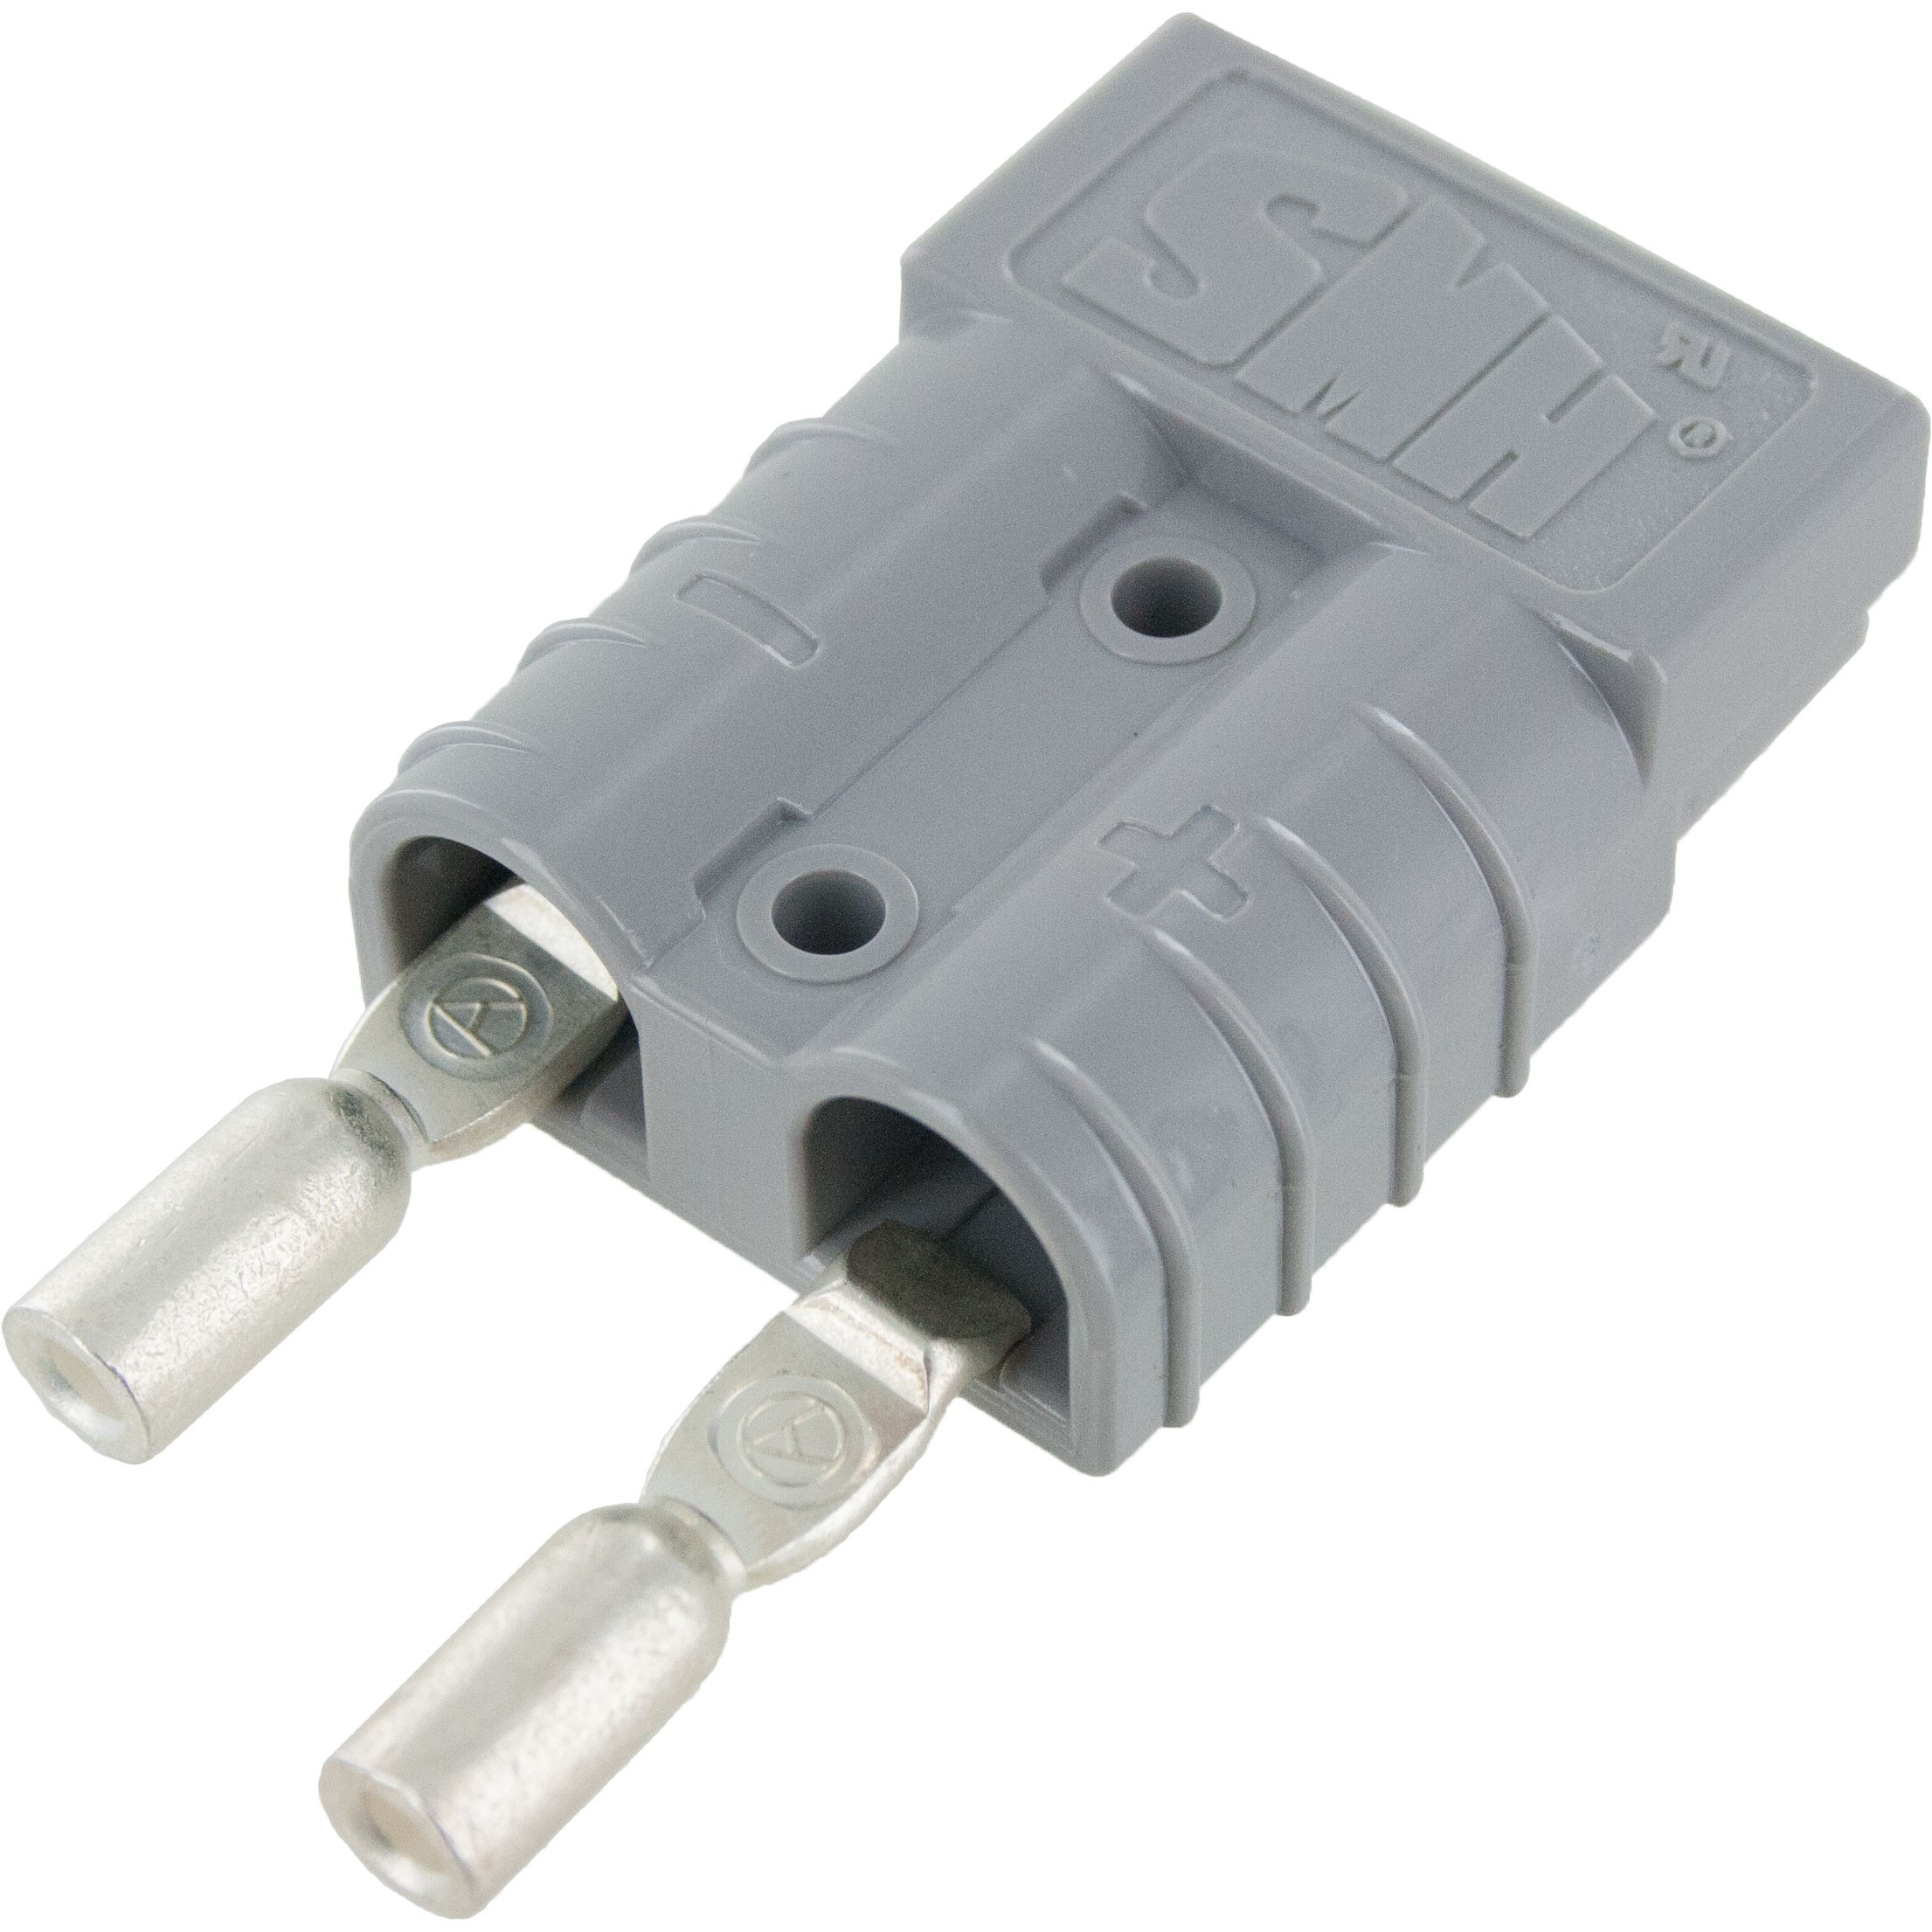 Battery Connector Kit 12-10 Awg 50 Amp Grey Front